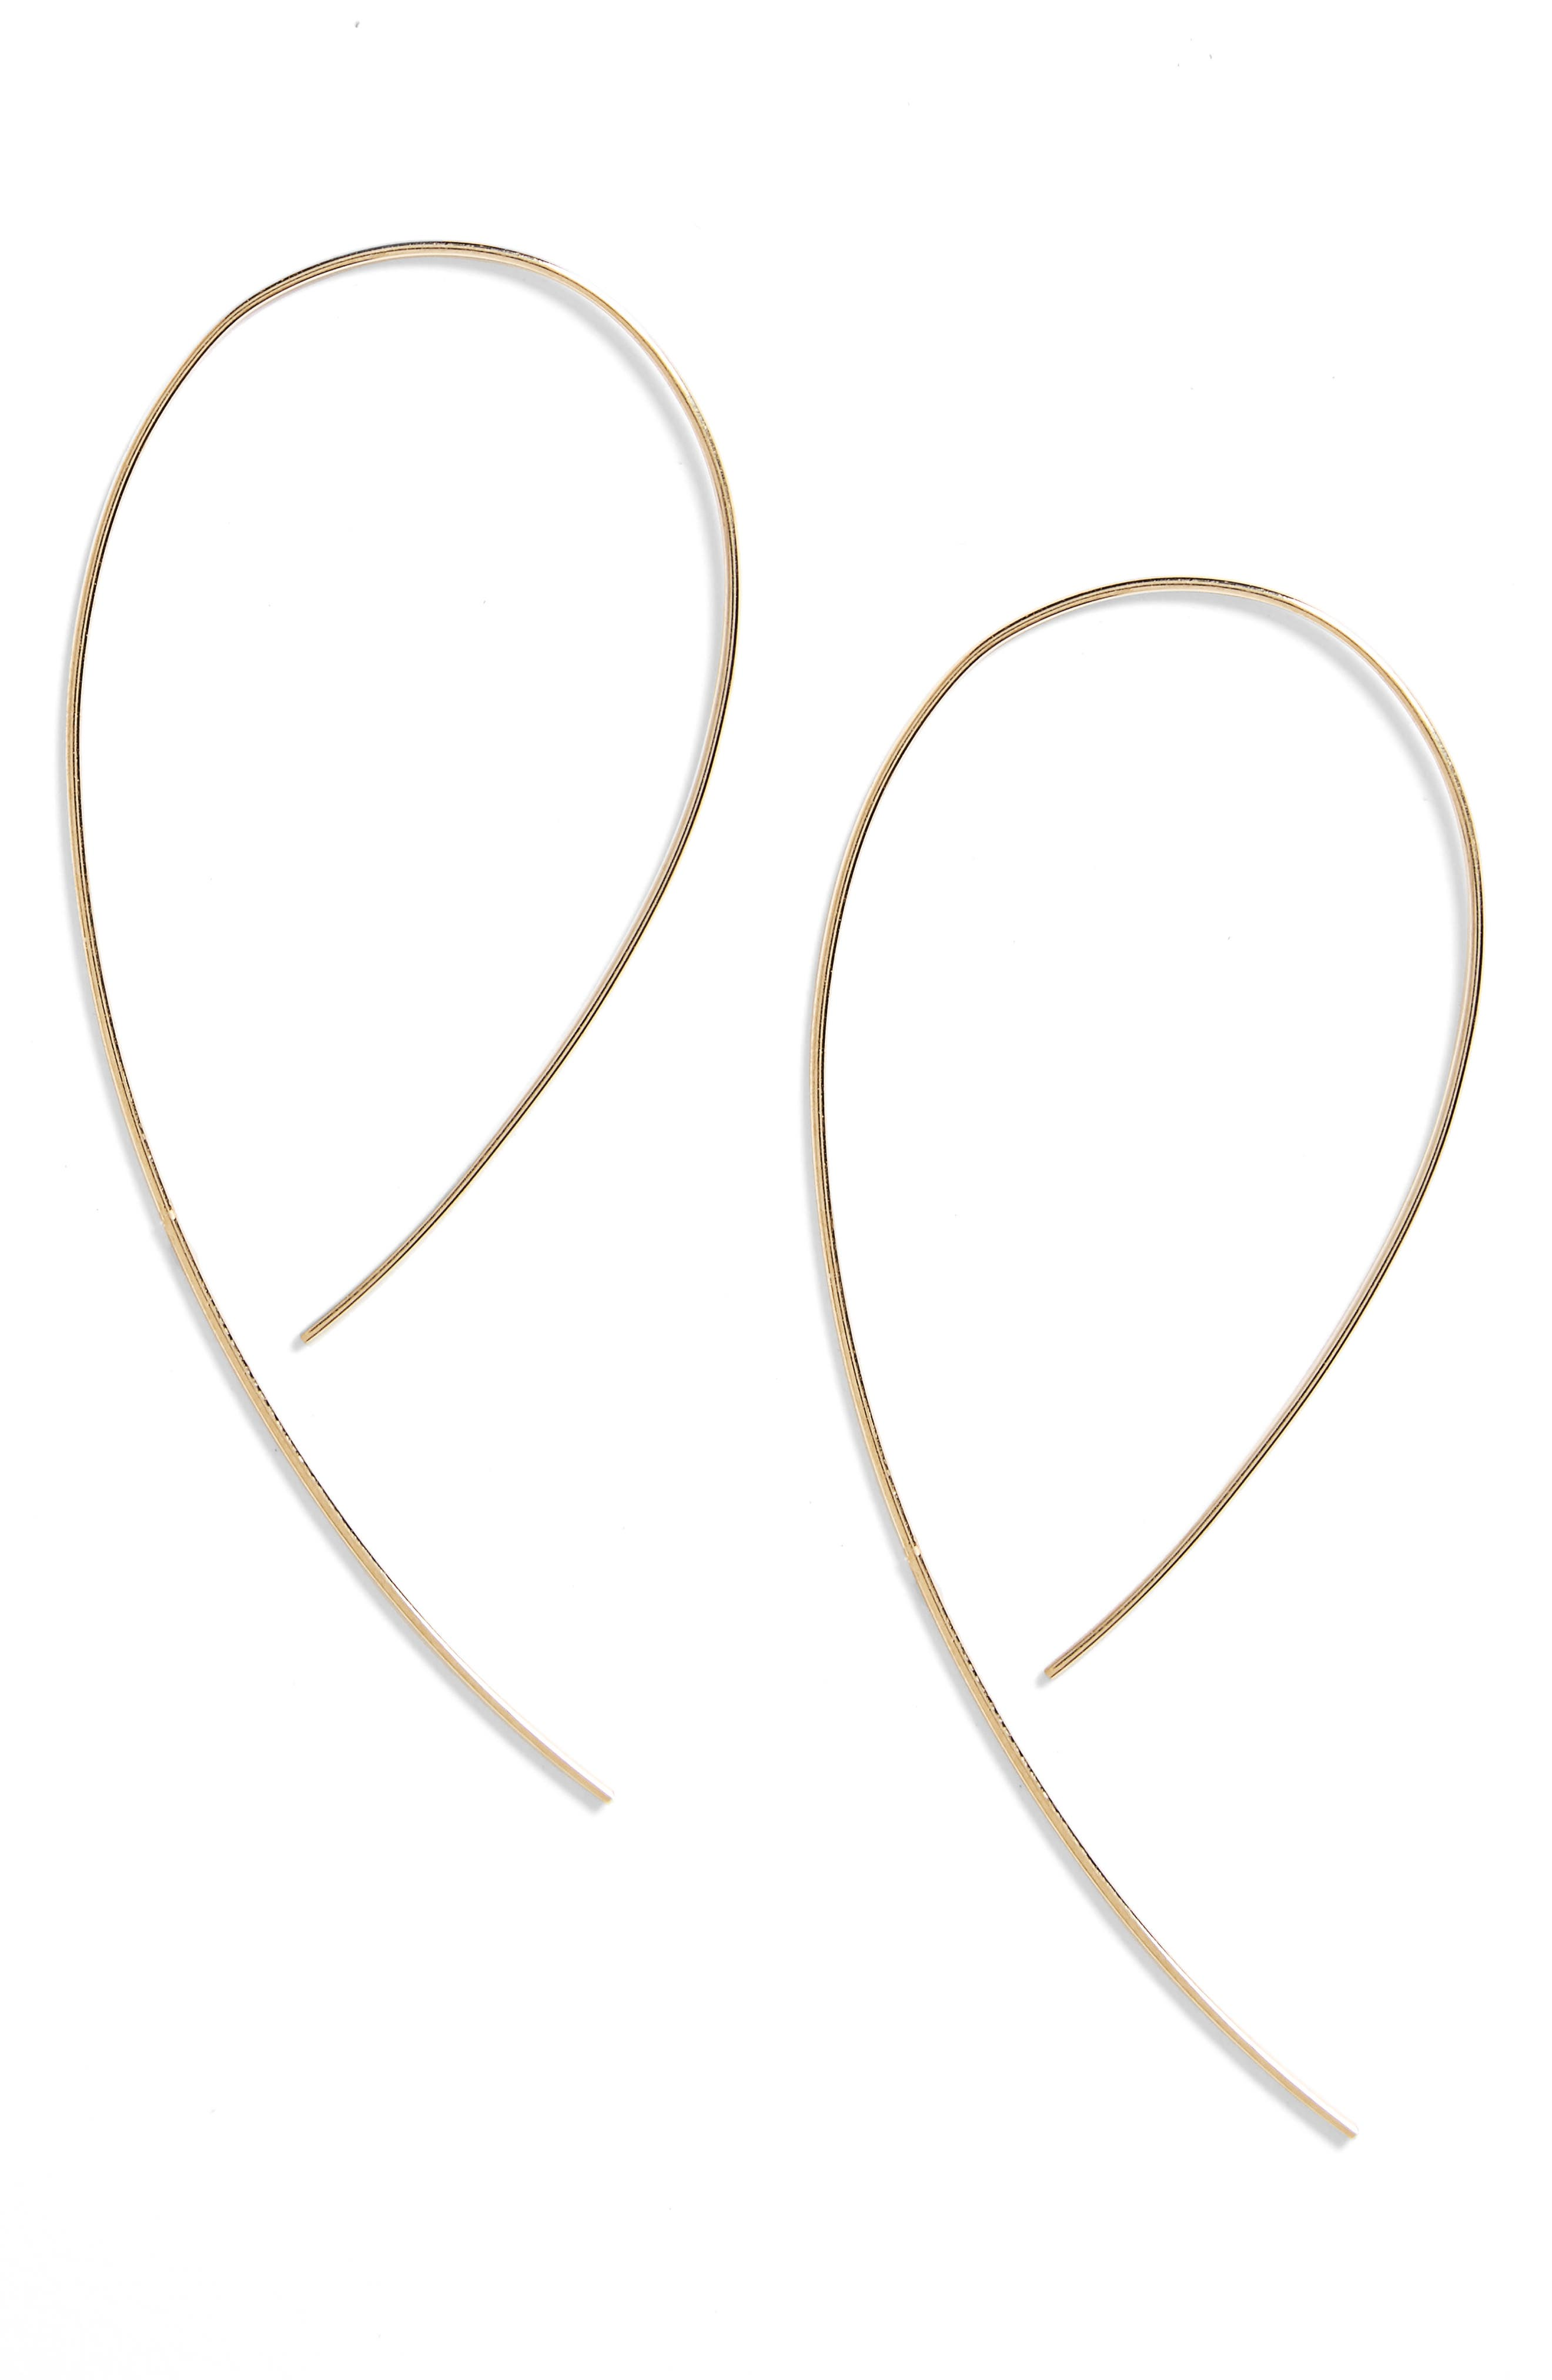 LANA JEWELRY, 'Hooked on Hoop' Earrings, Main thumbnail 1, color, YELLOW GOLD